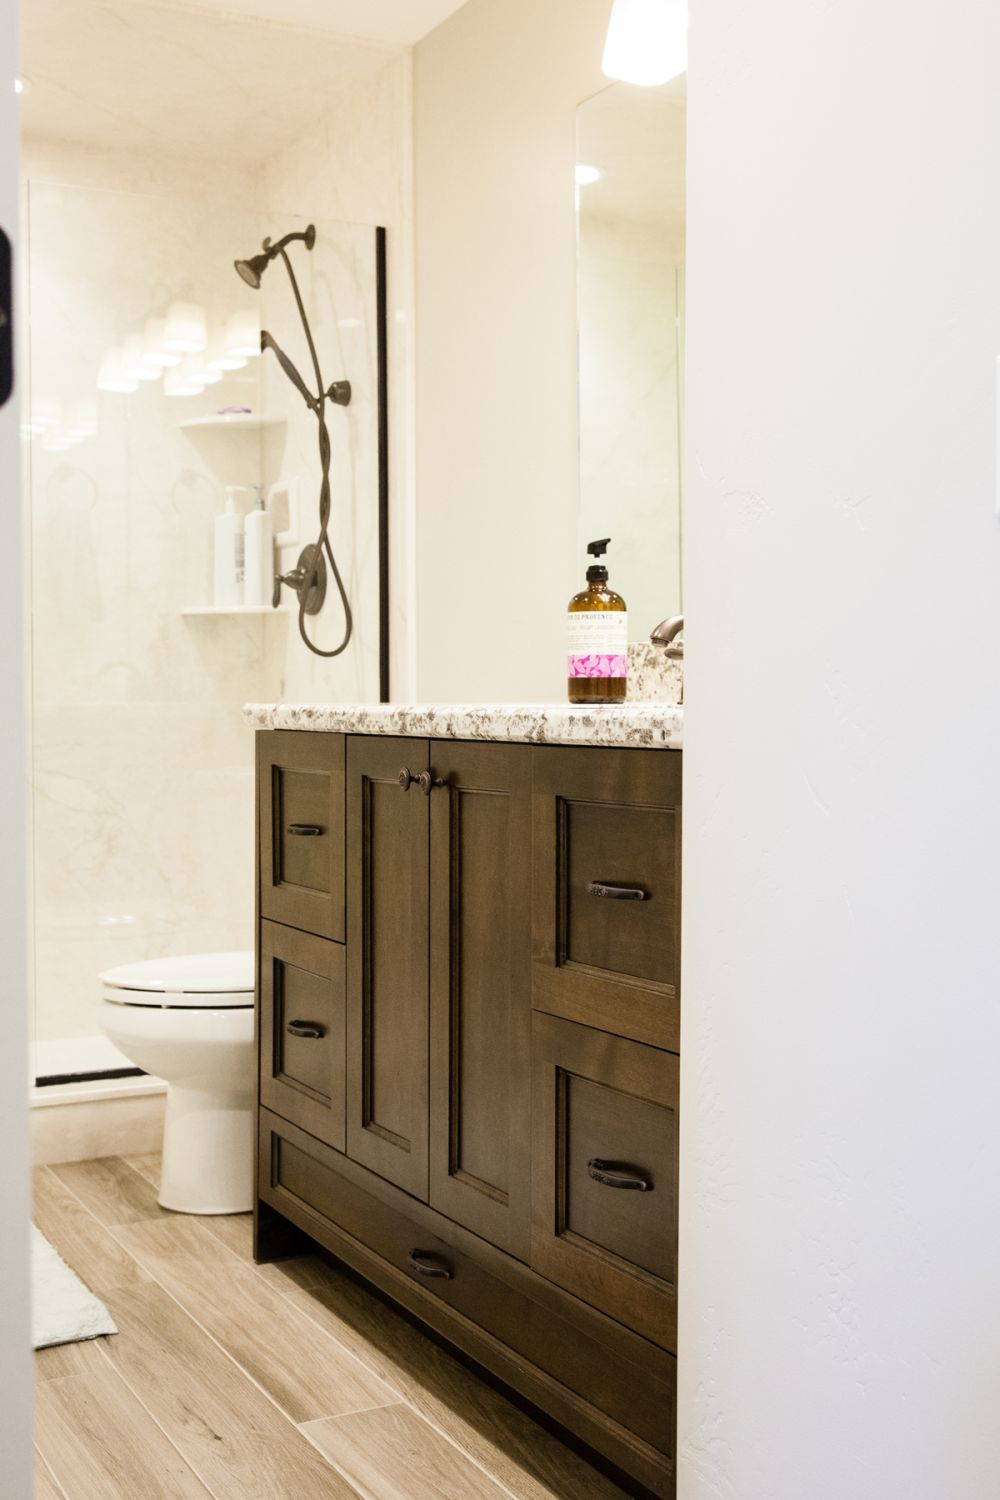 How to Decorate a Bathroom Without Clutter Tips